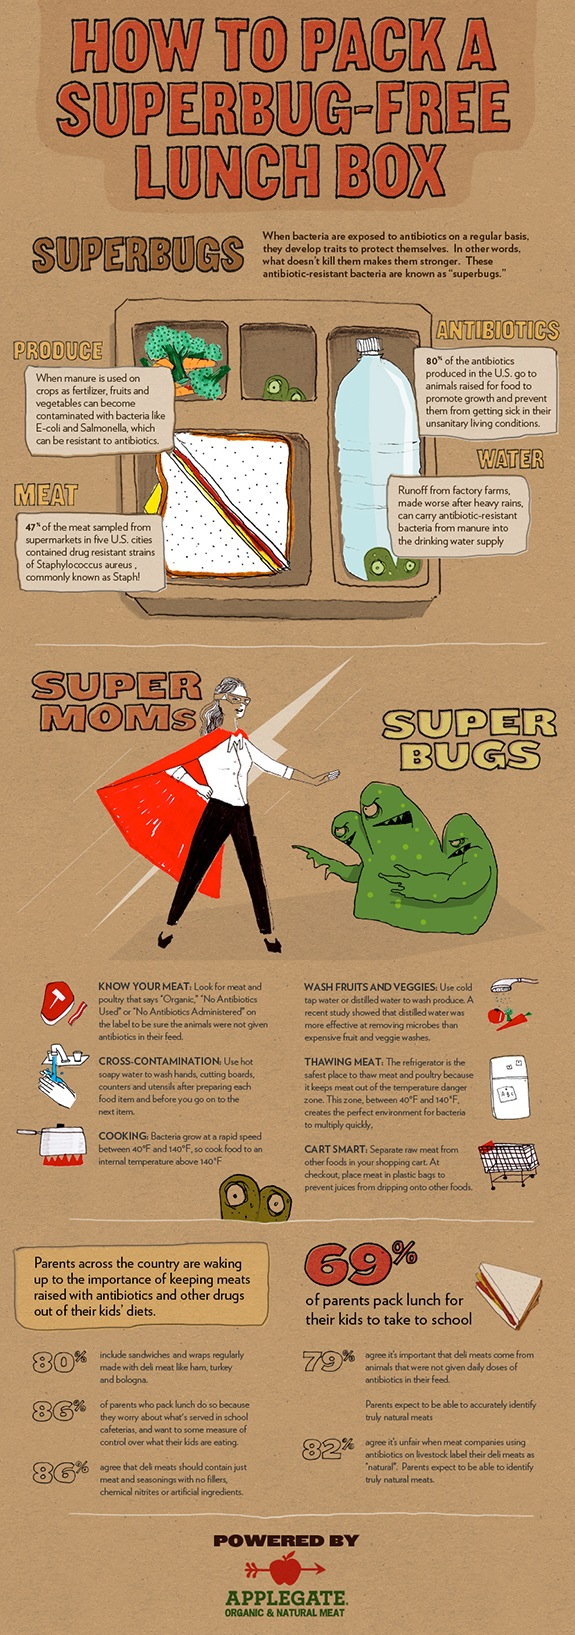 How to Stay Away From Superbugs